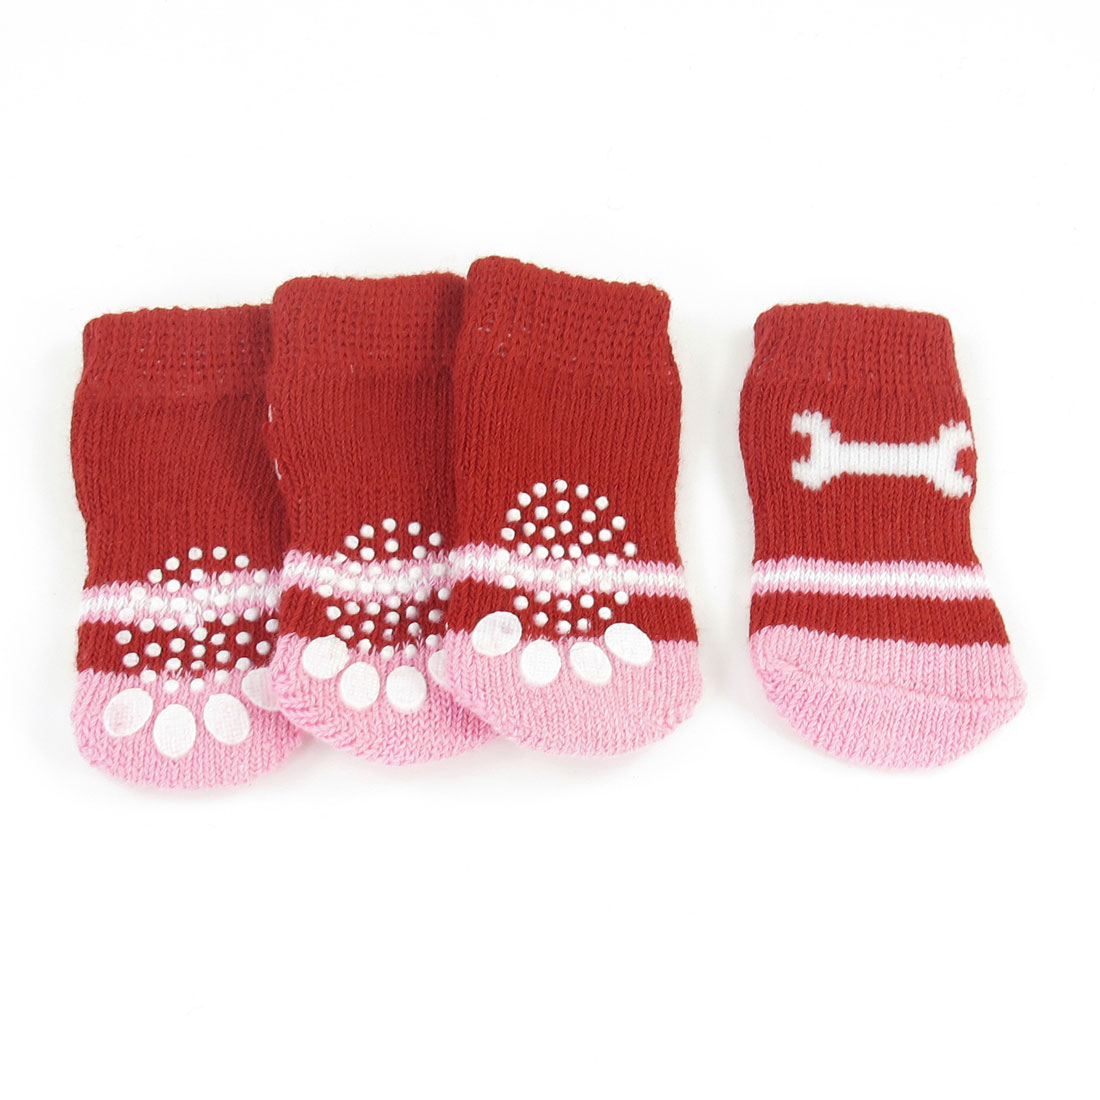 2 Pairs Size S Bone Pattern Stretchy Warm Pet Dog Puppy Socks Pink Red